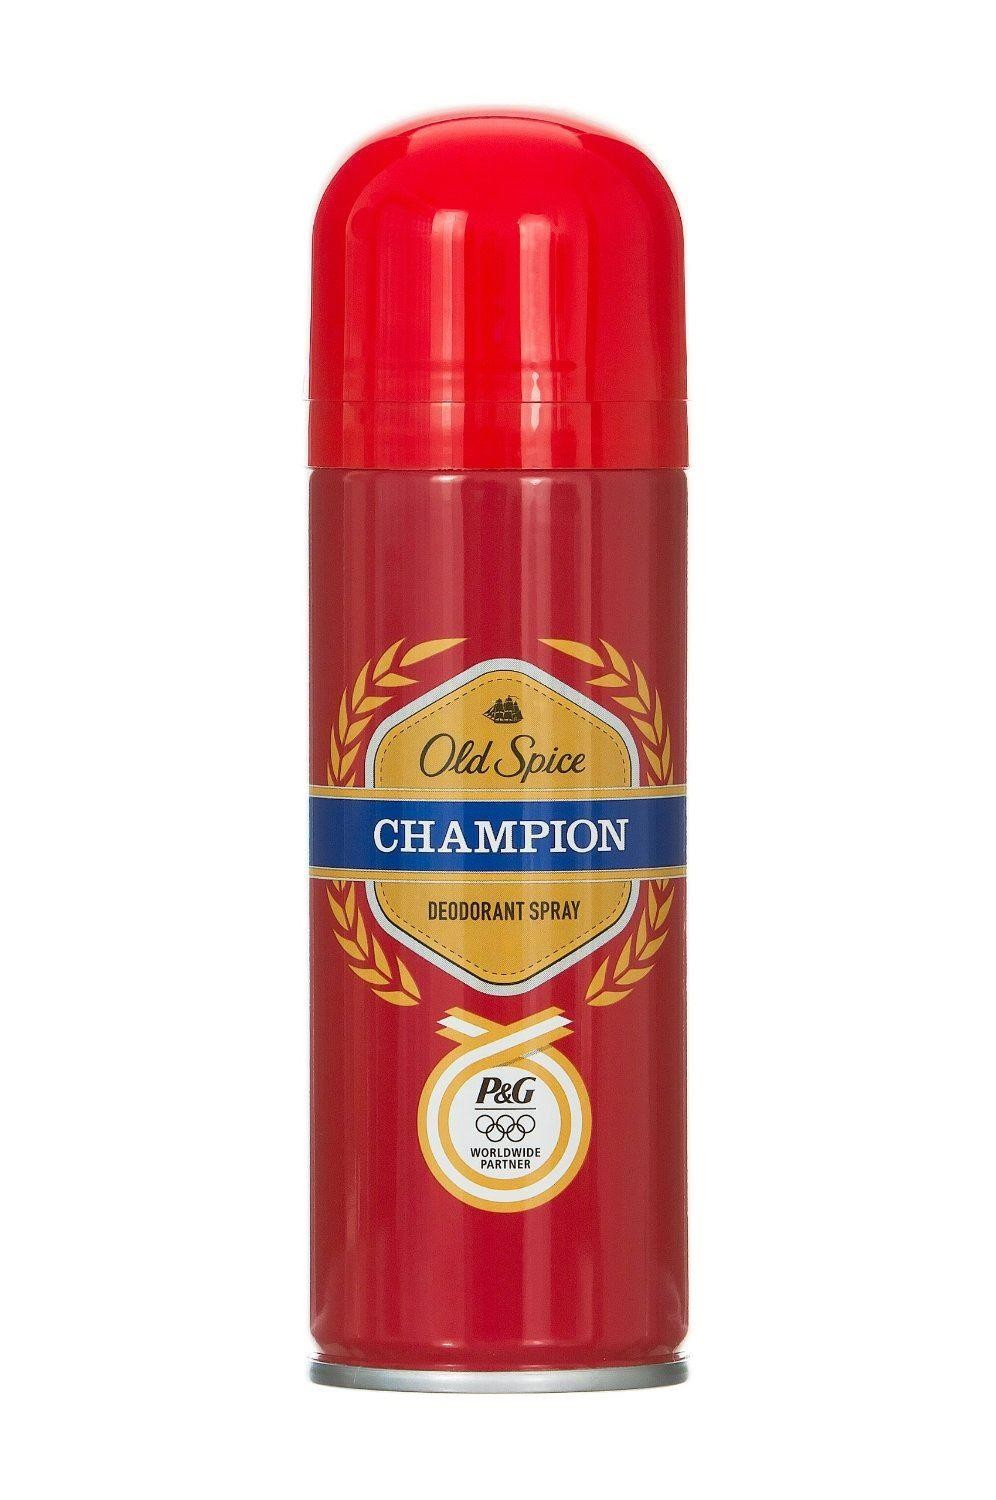 Old Spice 150ml Champion Deodorant Body Spray [Personal Care]